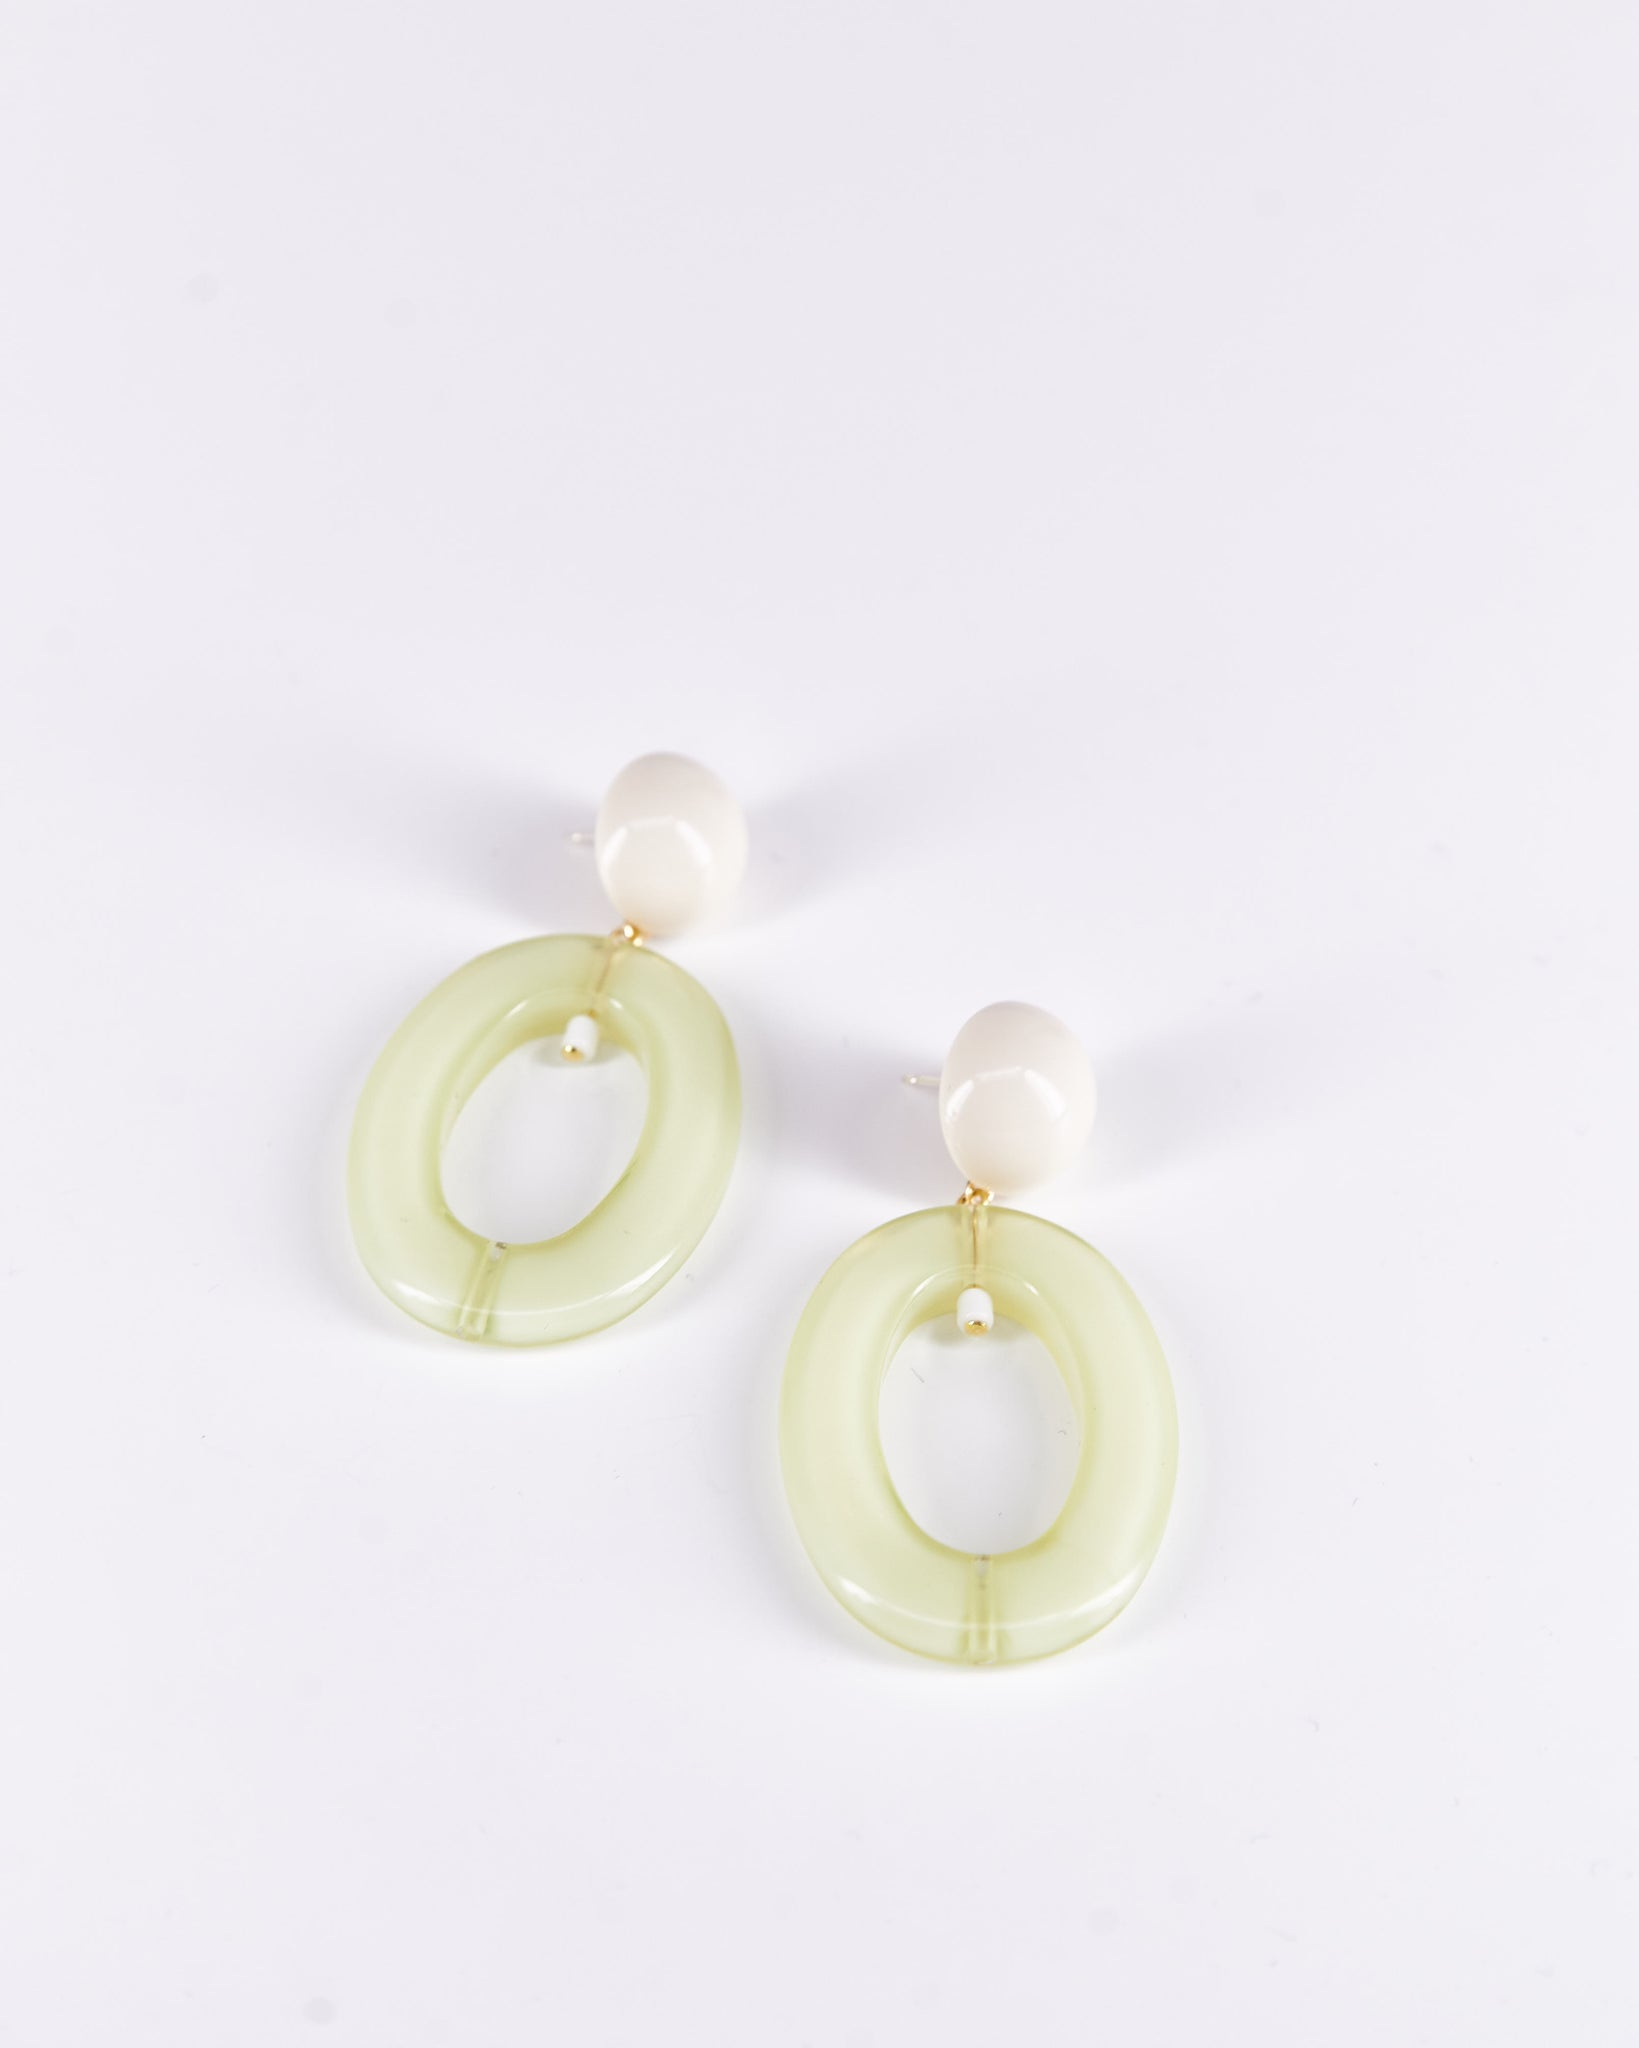 Earrings-MeloII-ProjectBon-Acetate-Handmade-Localdesigners-Nuovum-Barcelona